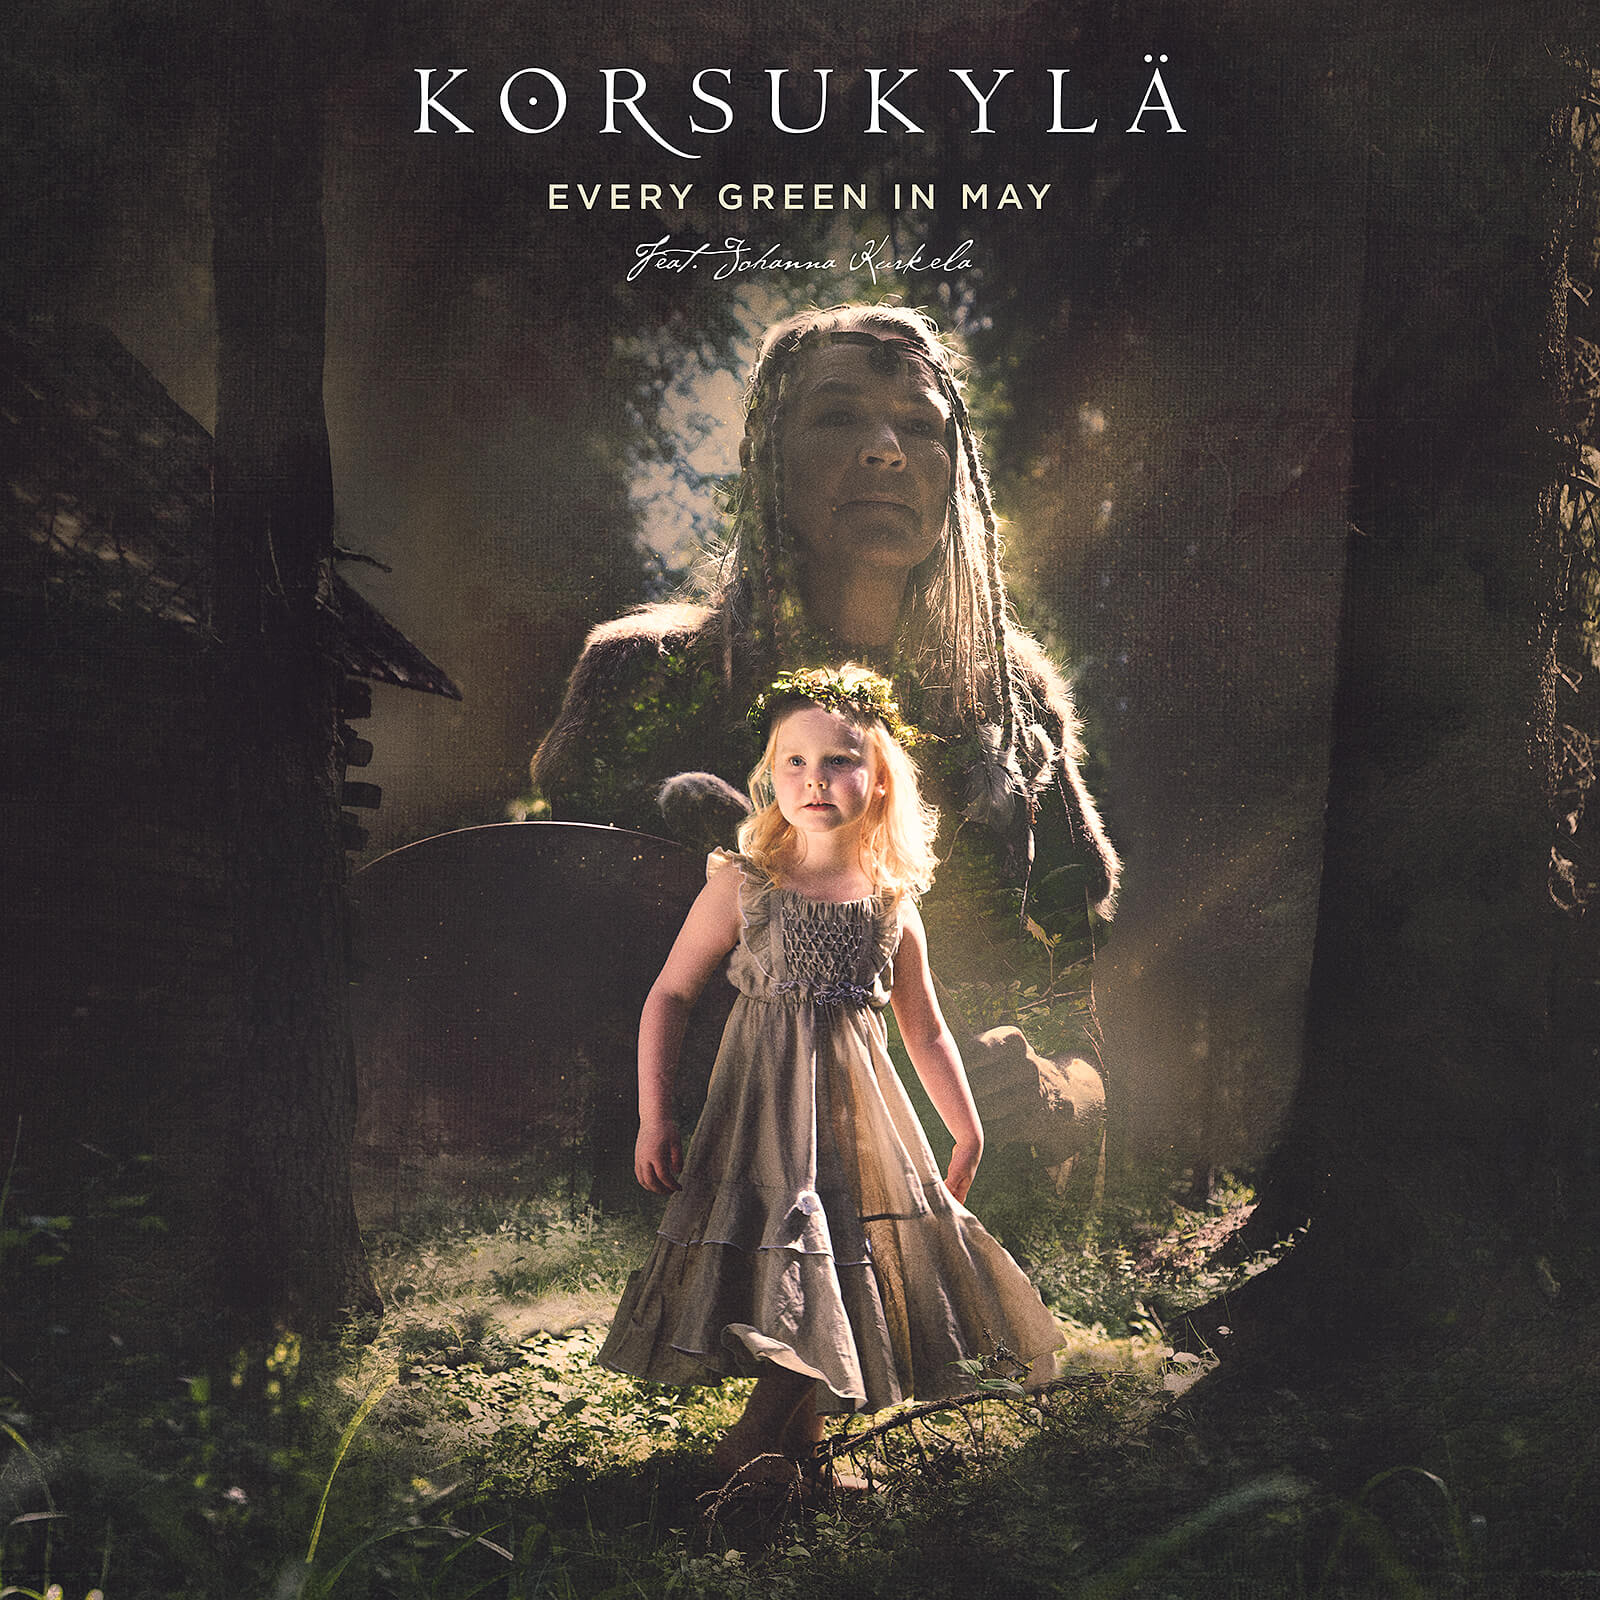 Korsukylä feat. Johanna Kurkela – Every Green in May